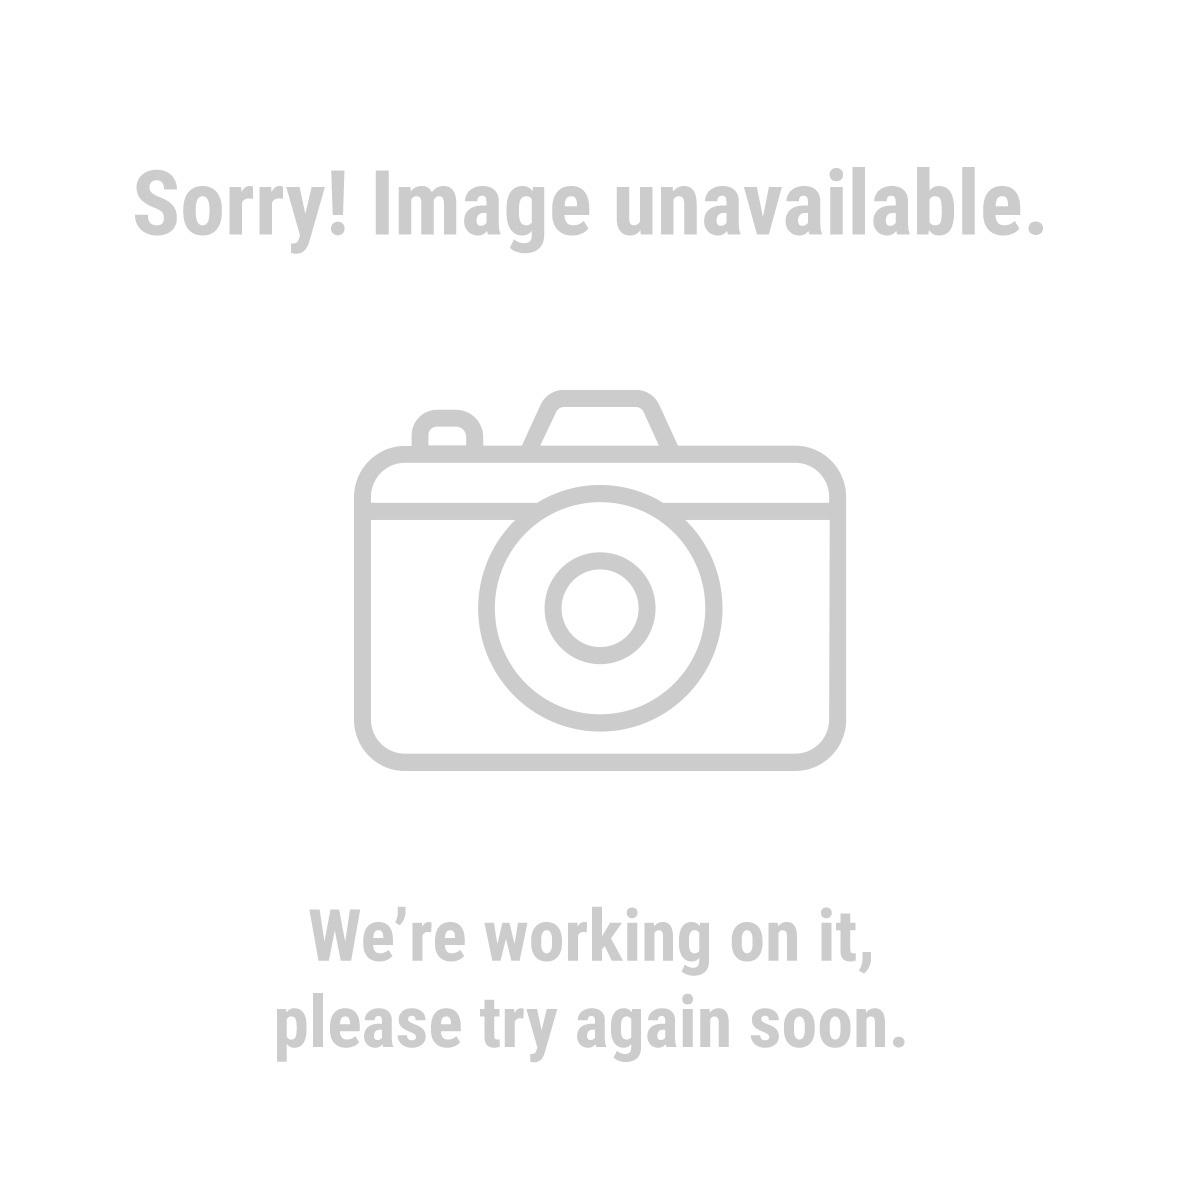 1/3 Horsepower, 3 gal., 100 PSI Oilless Air Compressor